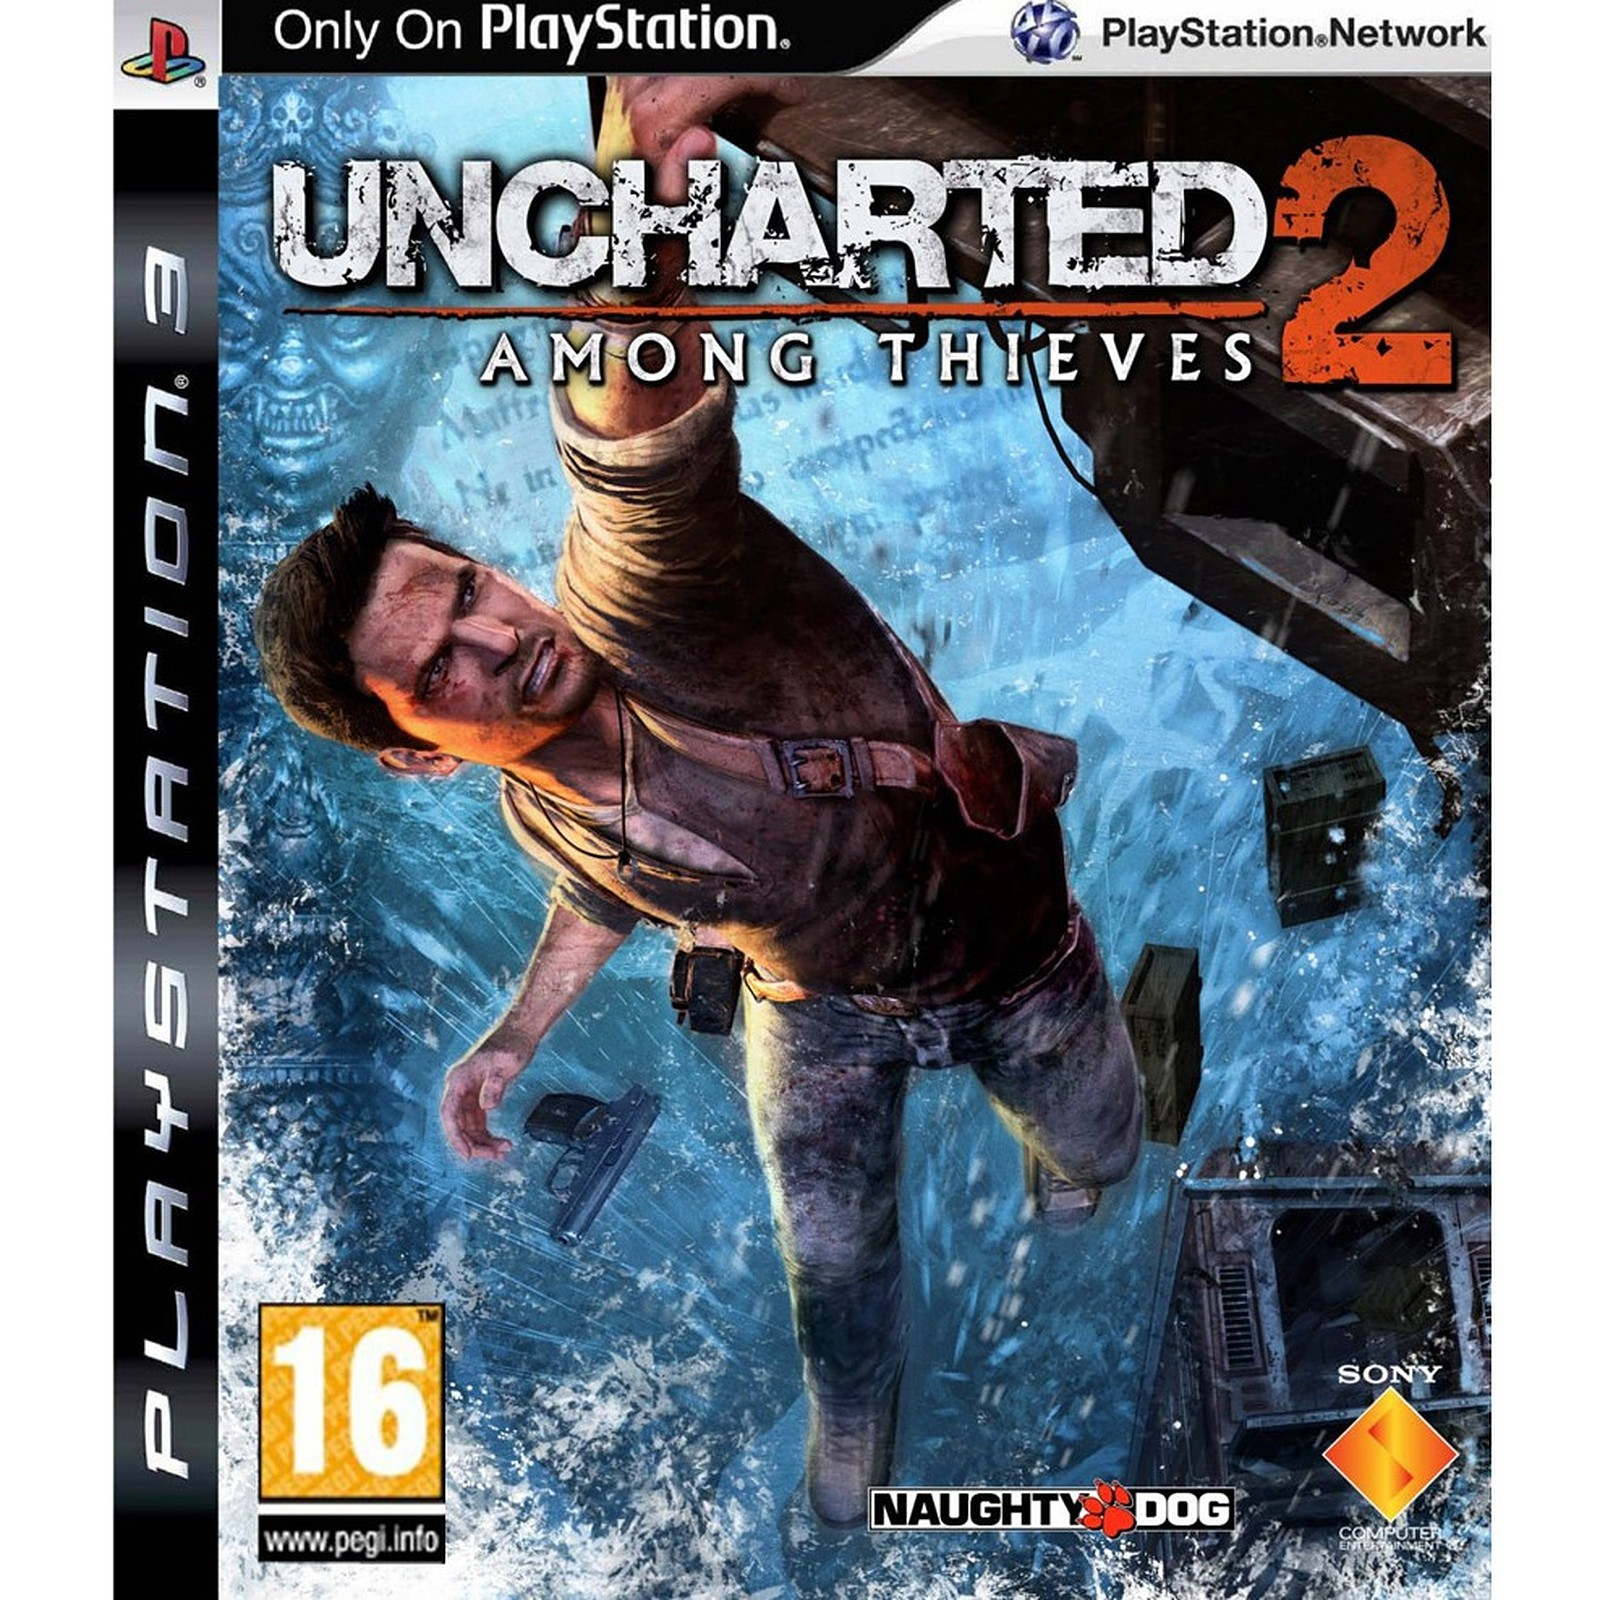 Uncharted 2 Among Thieves | Uncharted 2 Серед крадіїв б/в PS3